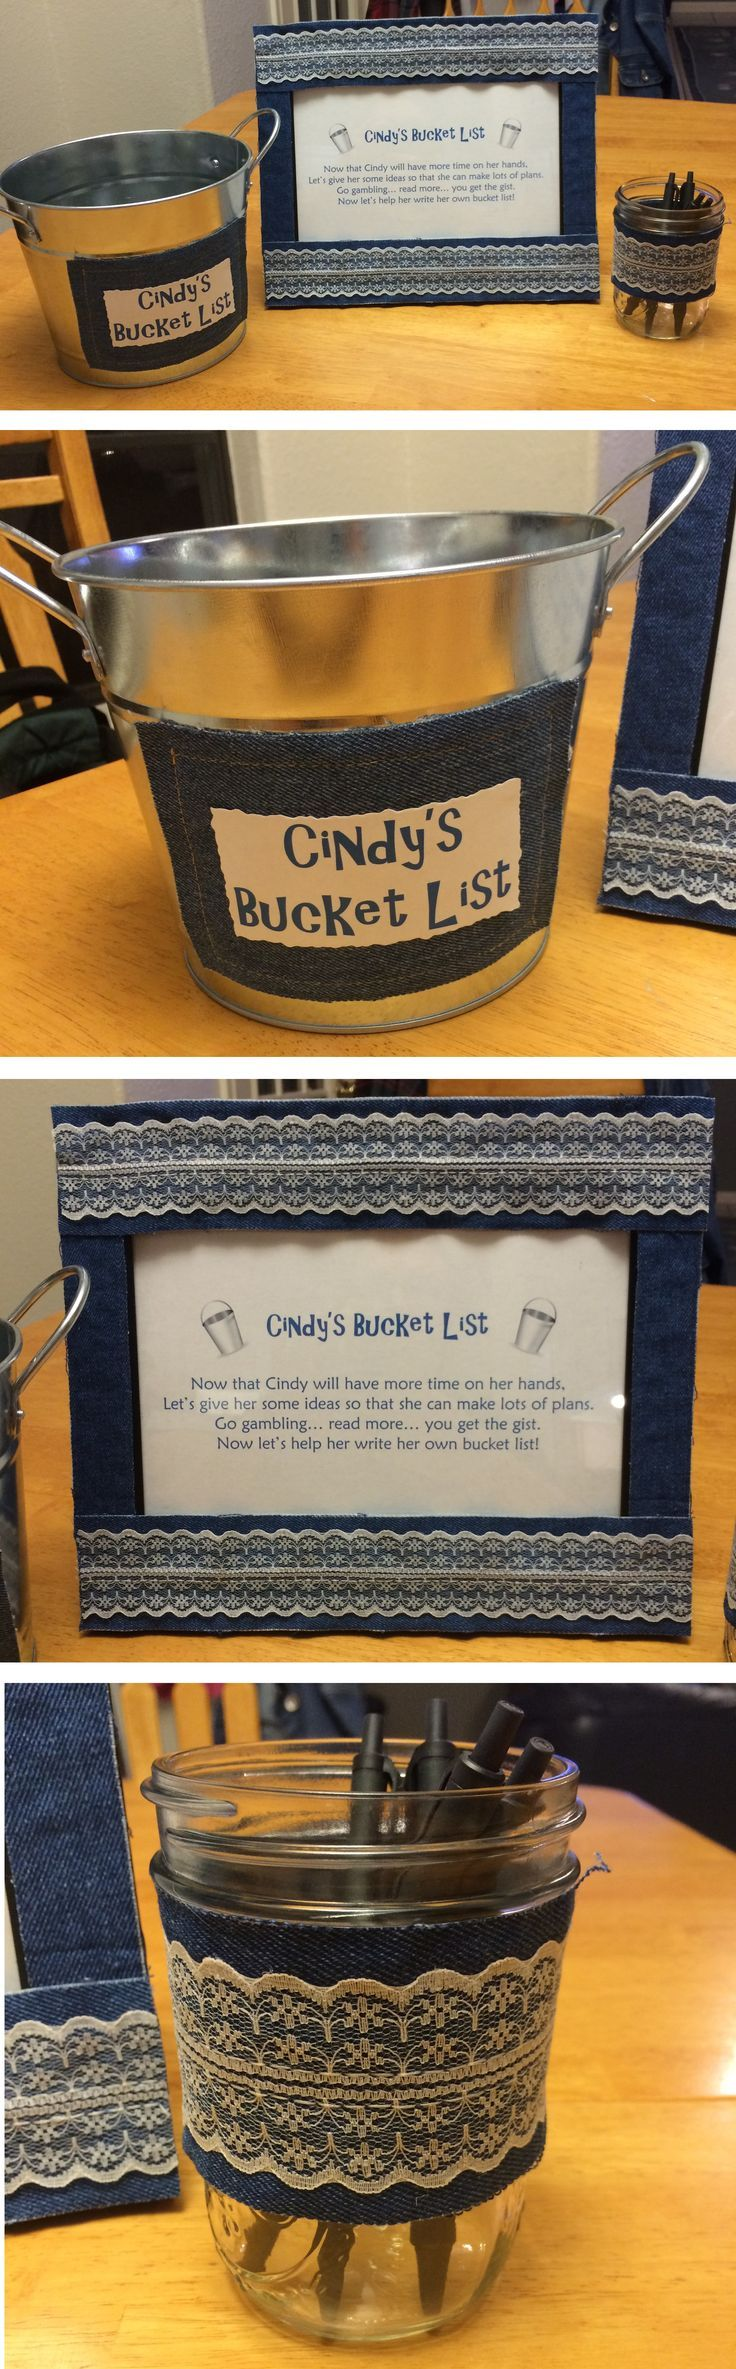 Retirement Party Idea - Bucket List! Decorate a bucket for guests to fill with ideas for the retiree to do with their new found freedom!